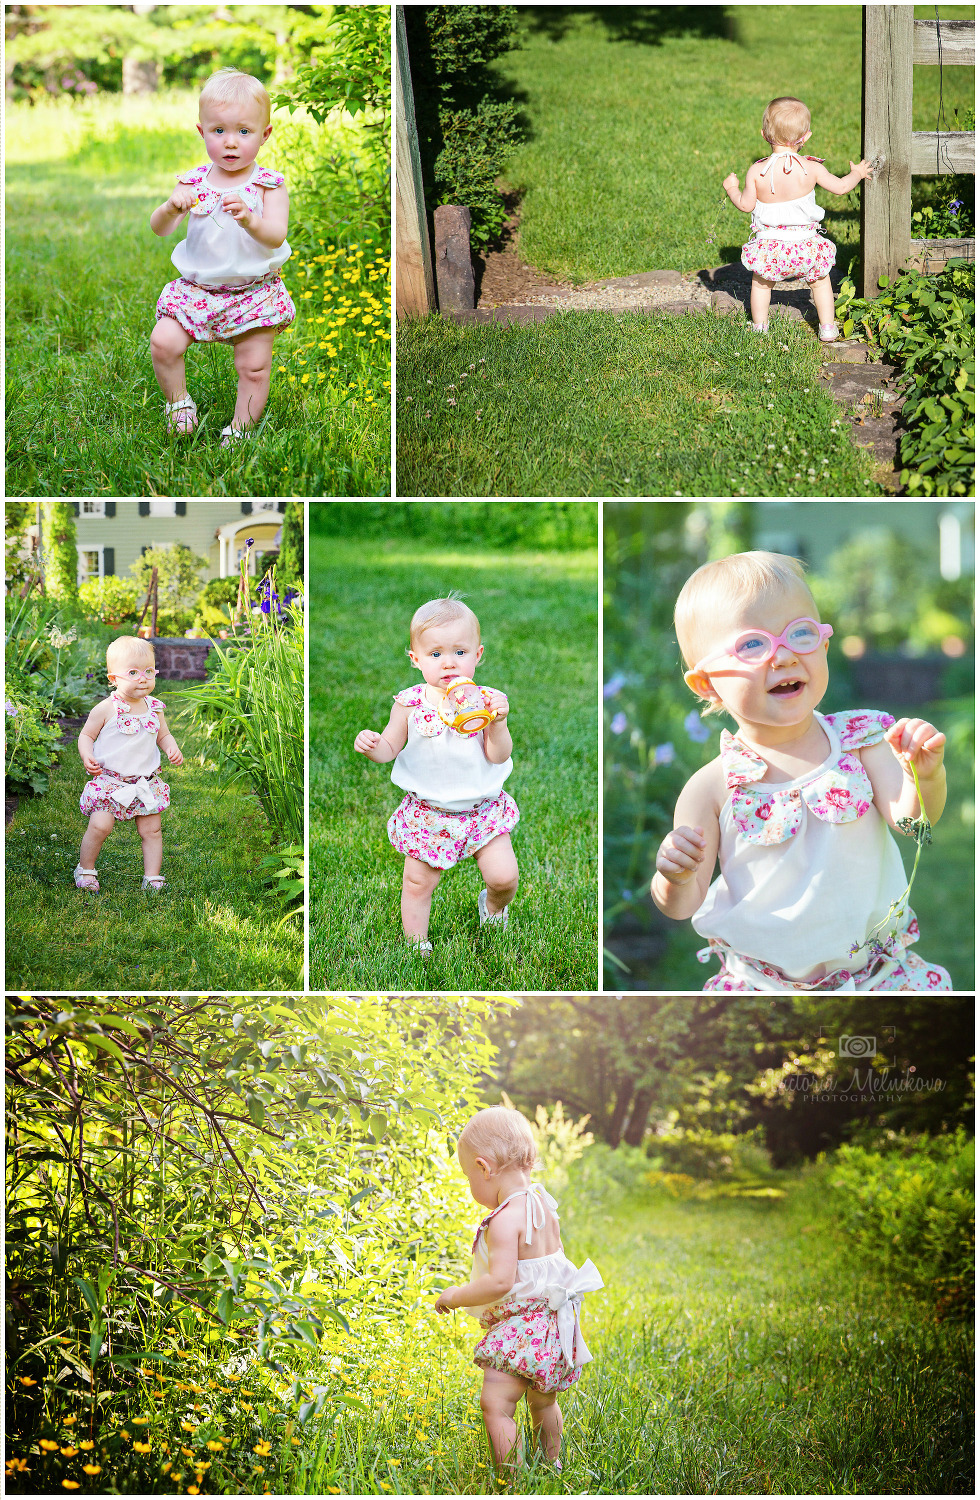 1 years old baby in the park photo ideas